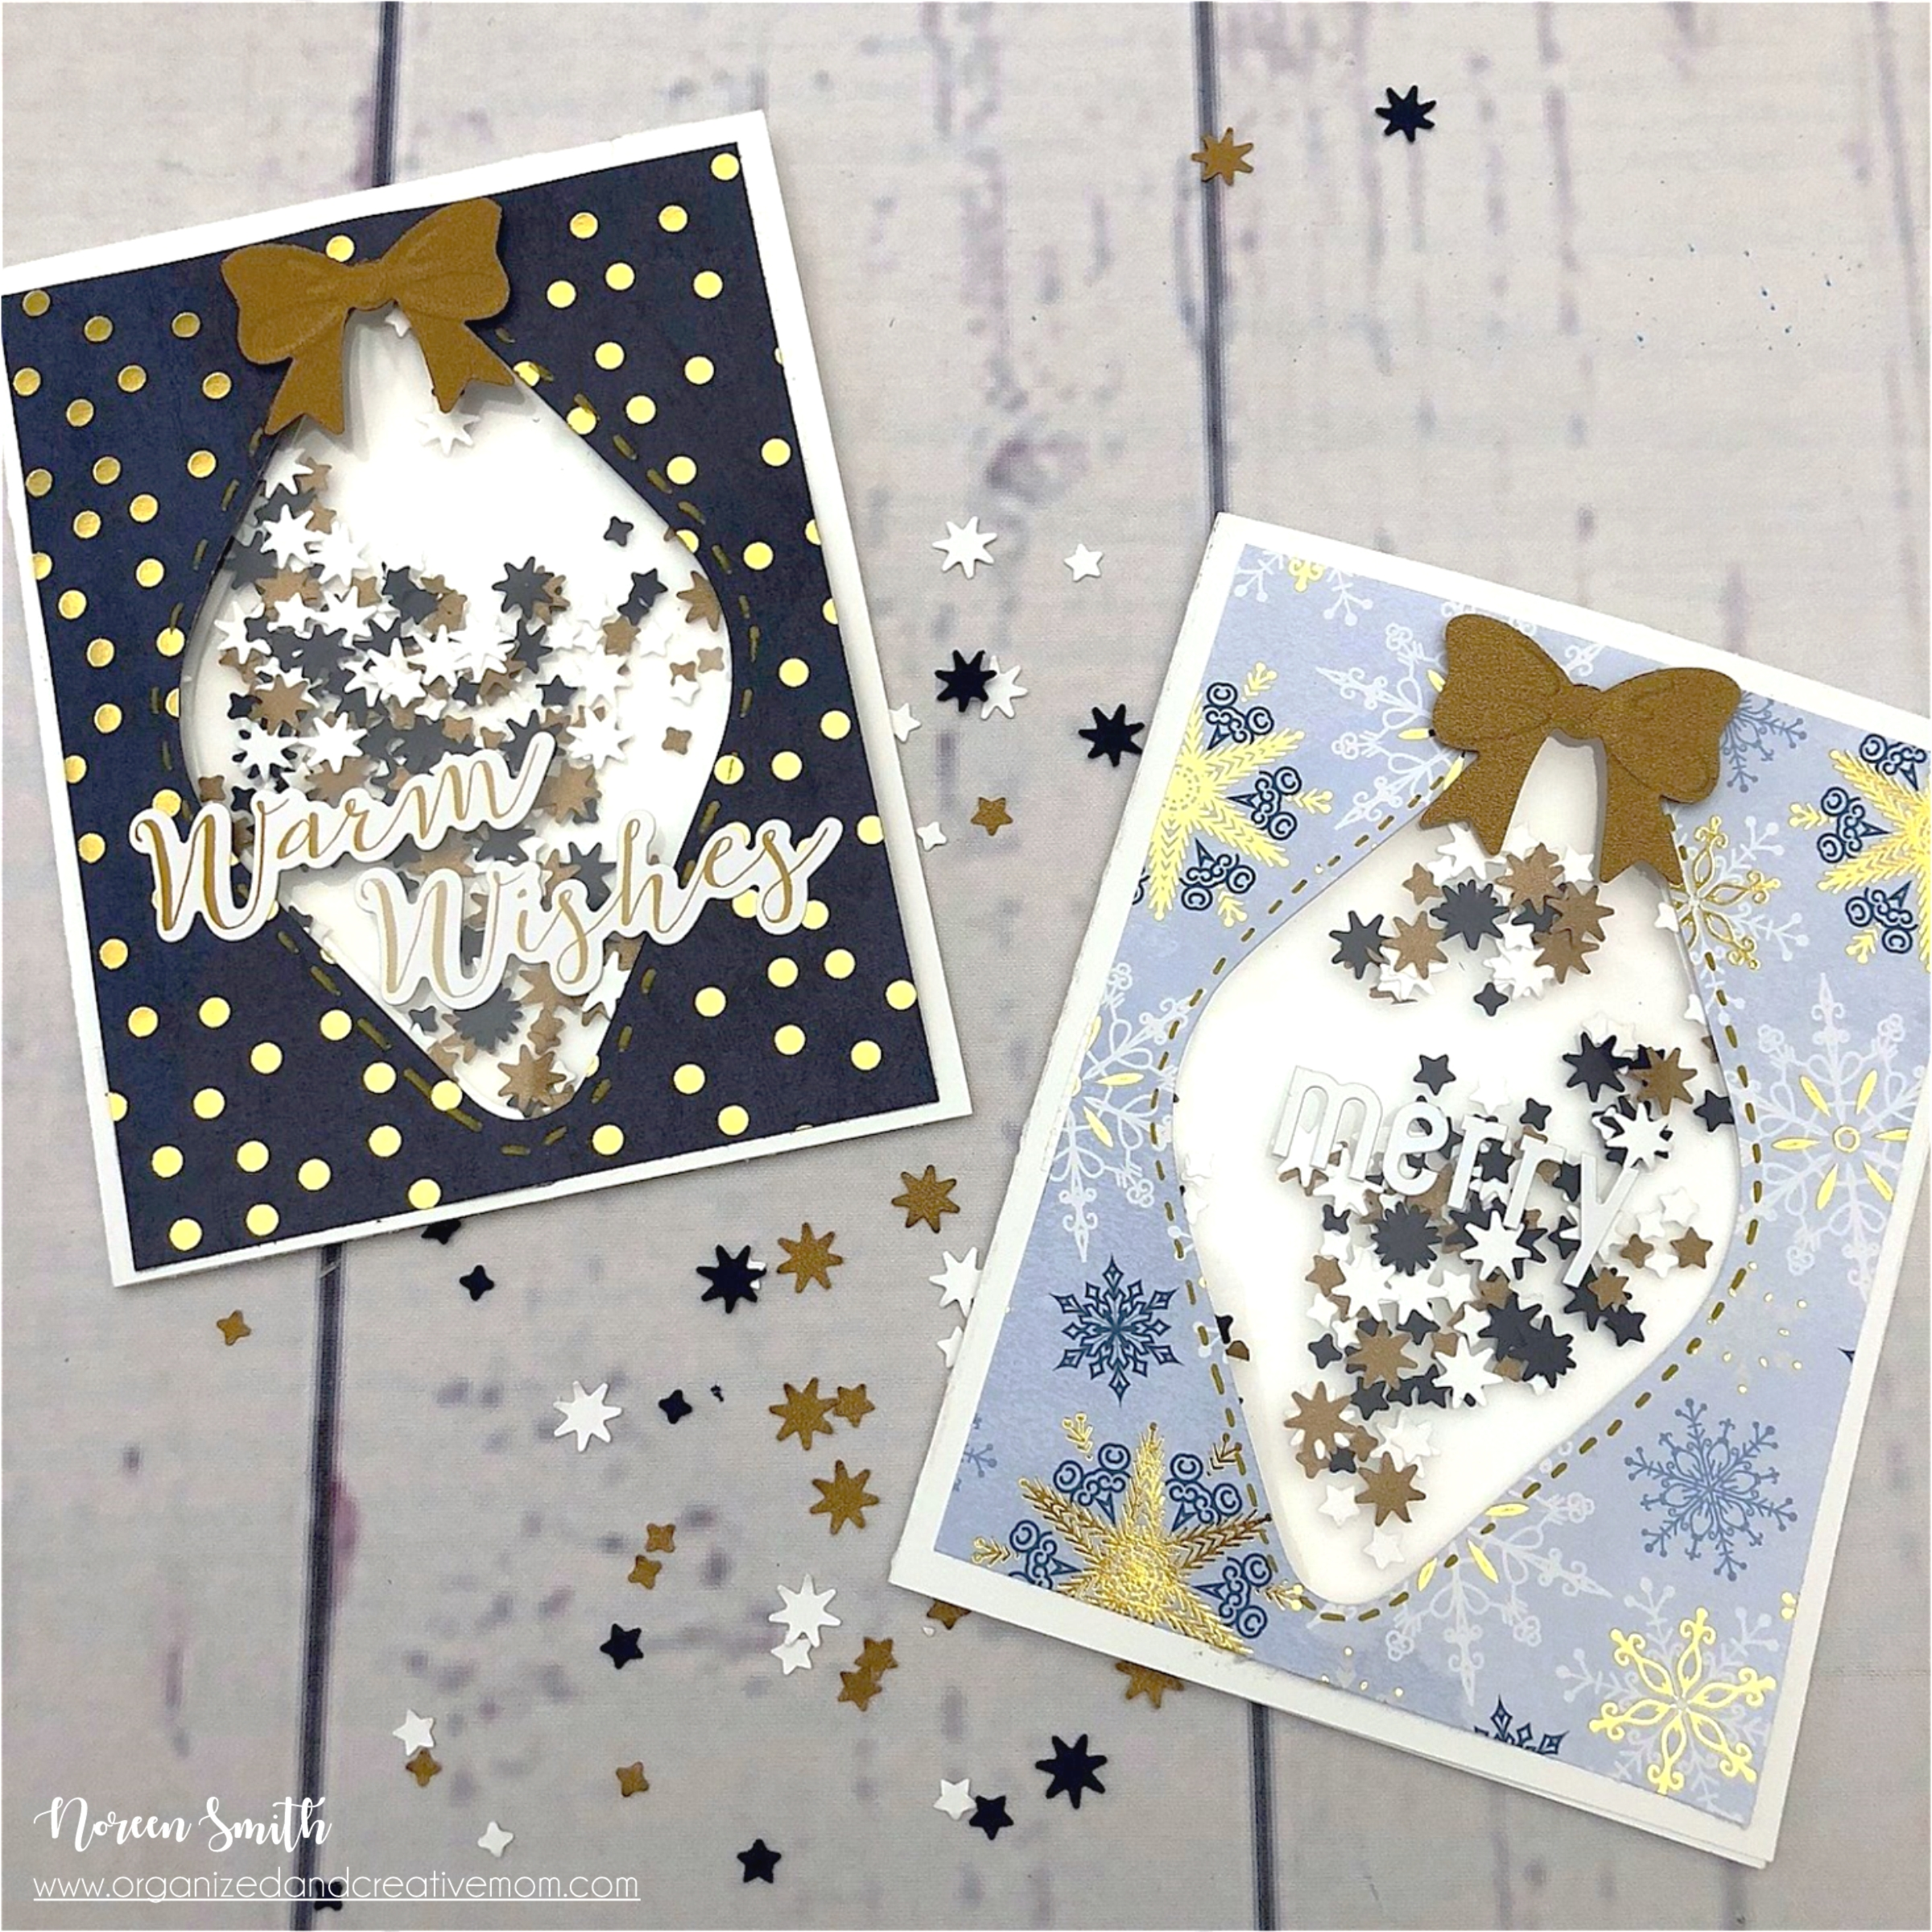 Shaker Cards Designed by Noreen Smith featuring Creative Memories | Creative Scrapbooker Magazine